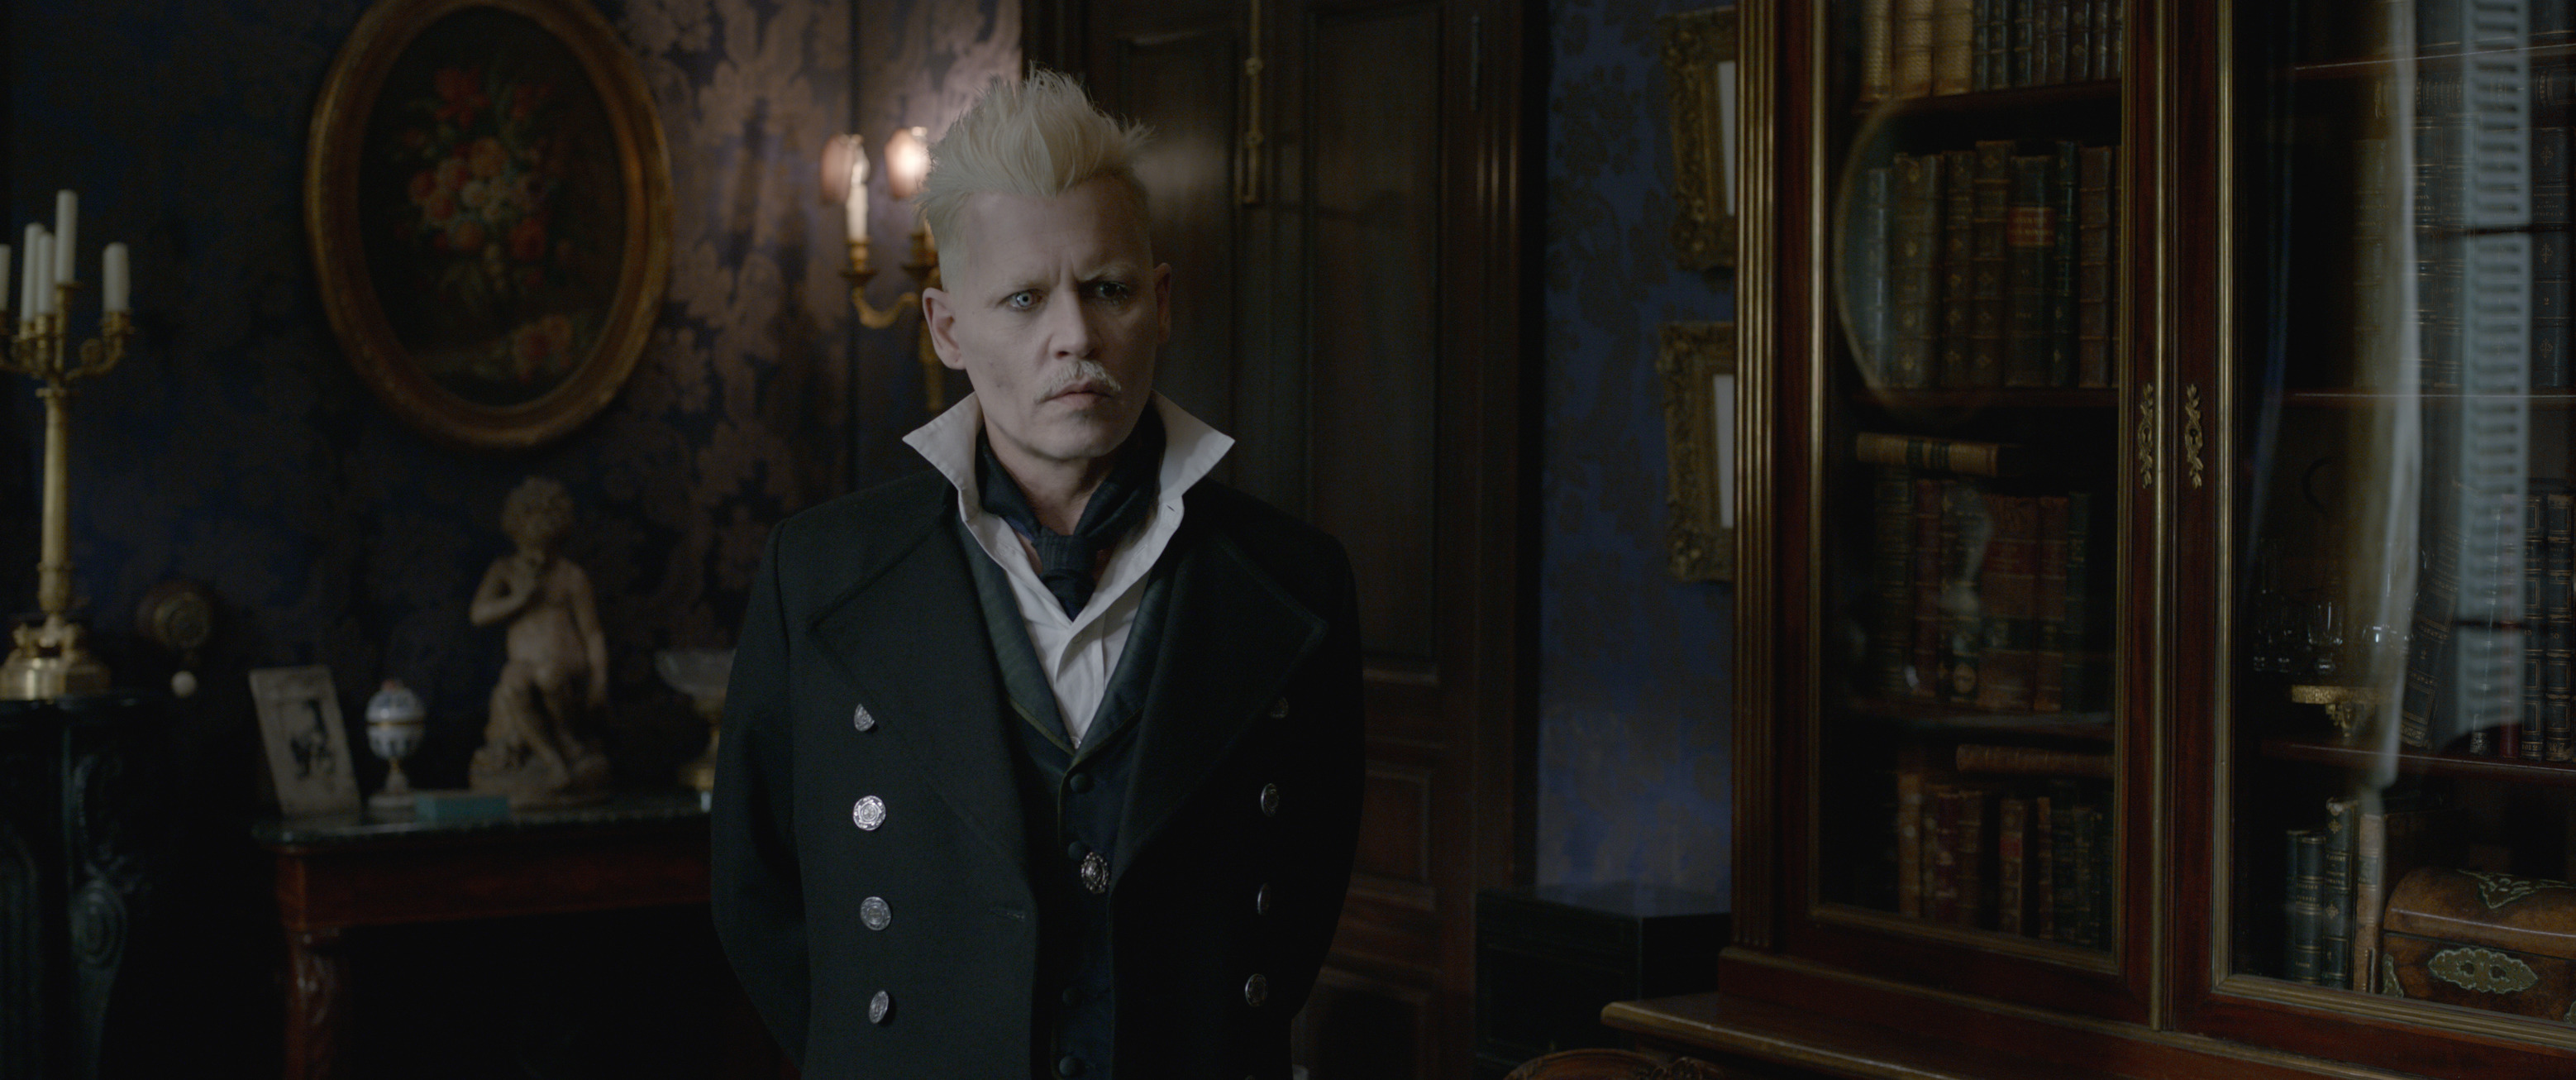 """Fantastic Beasts: The Crimes of Grindelwald"": Gellert Grindelwald (Johnny Depp)"